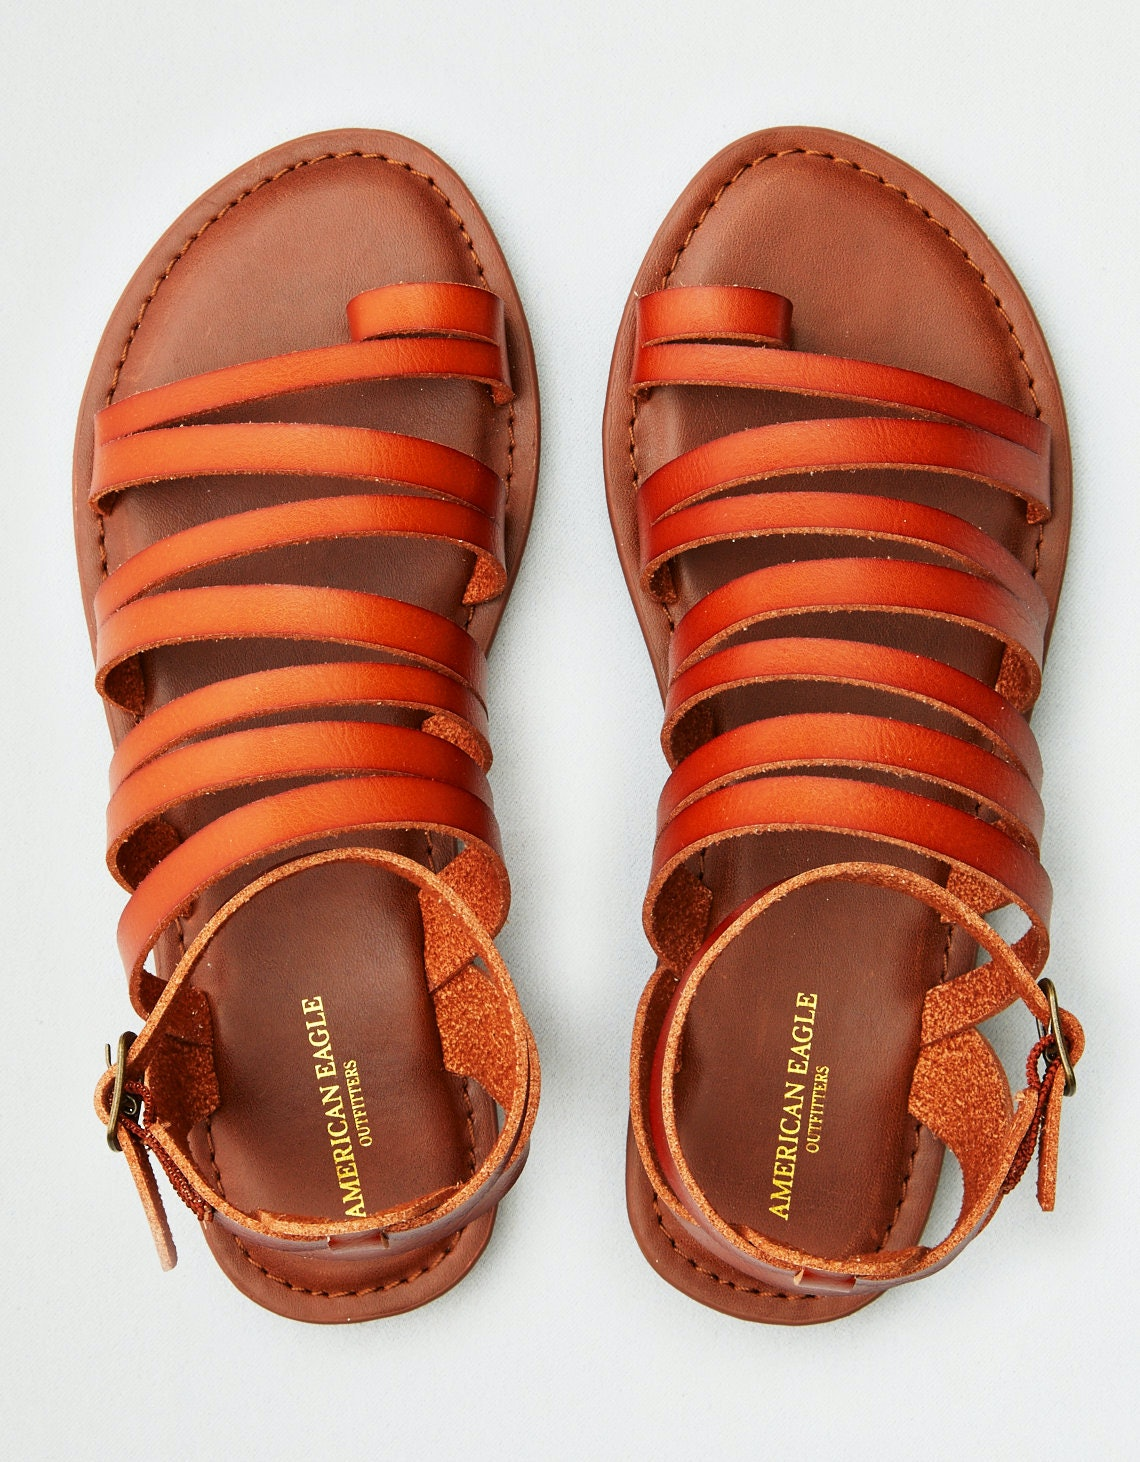 aec28c2cb228 10 Strappy Sandals Under  30 That Are Too Cute  Not  To Buy